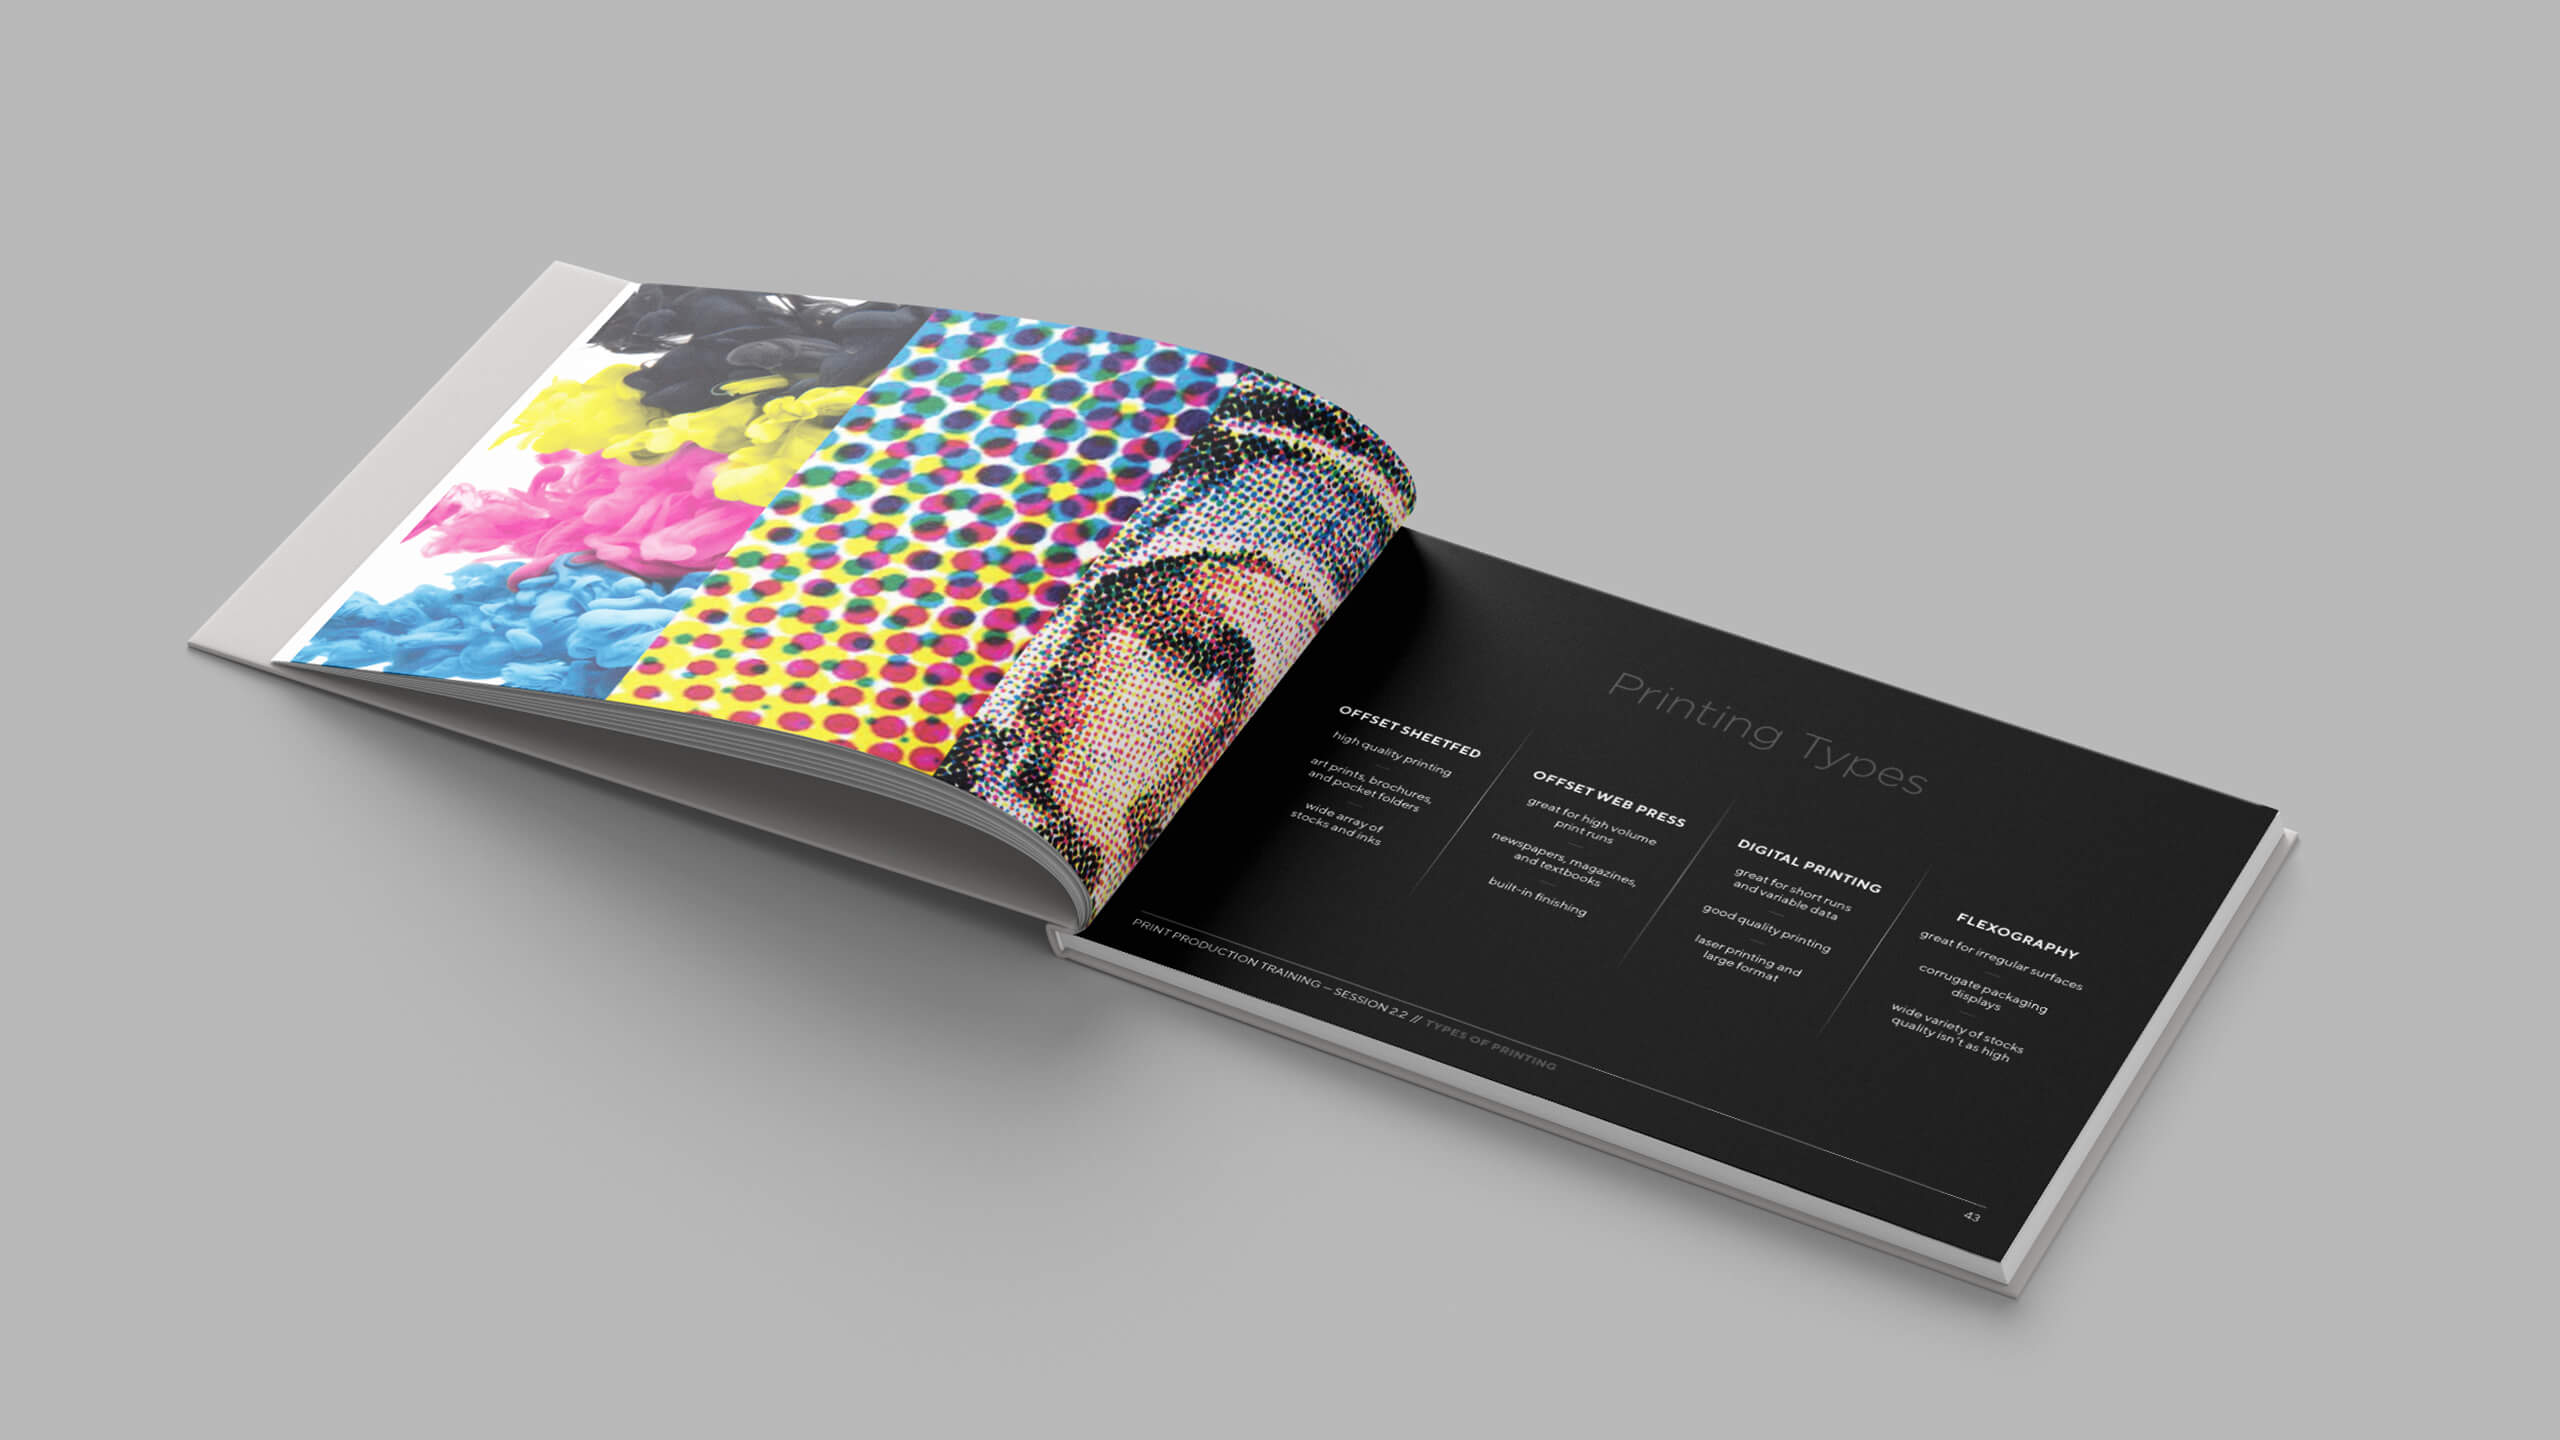 Spread from a Print Production Book Mockup on a grey surface